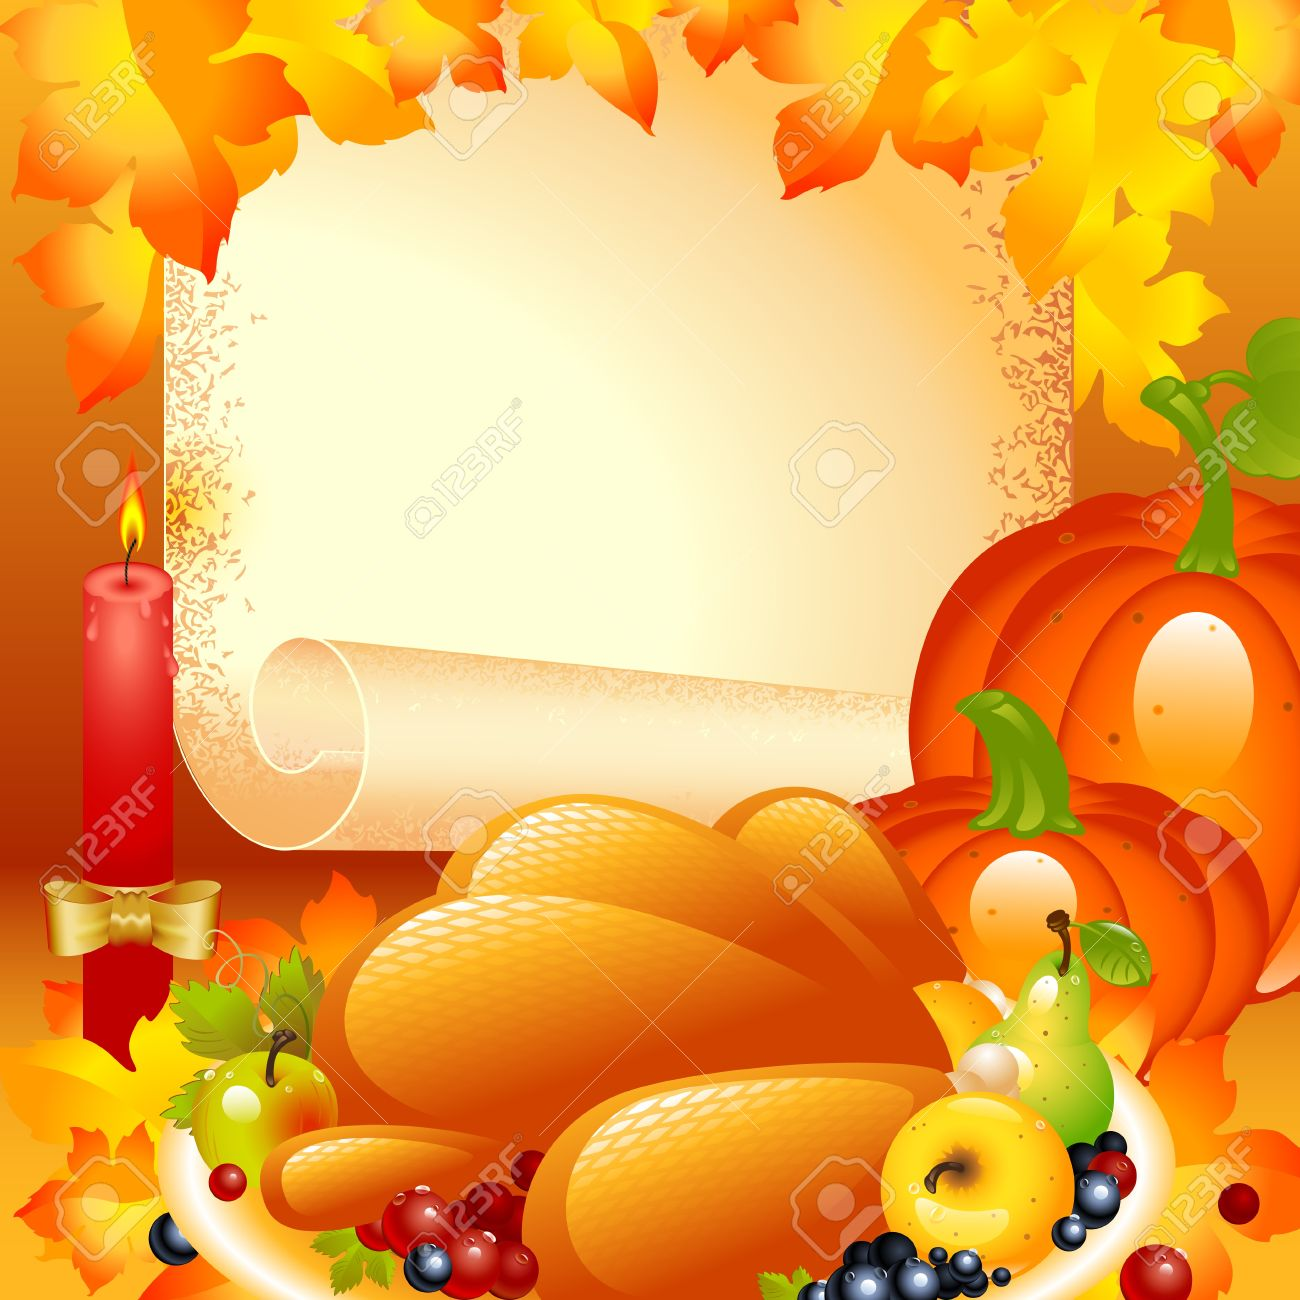 Thanksgiving card. background with turkey, the composition of fruits and vegetables in the background of the old roll of paper and a candle with a bow on top autumn leaves. - 11169327